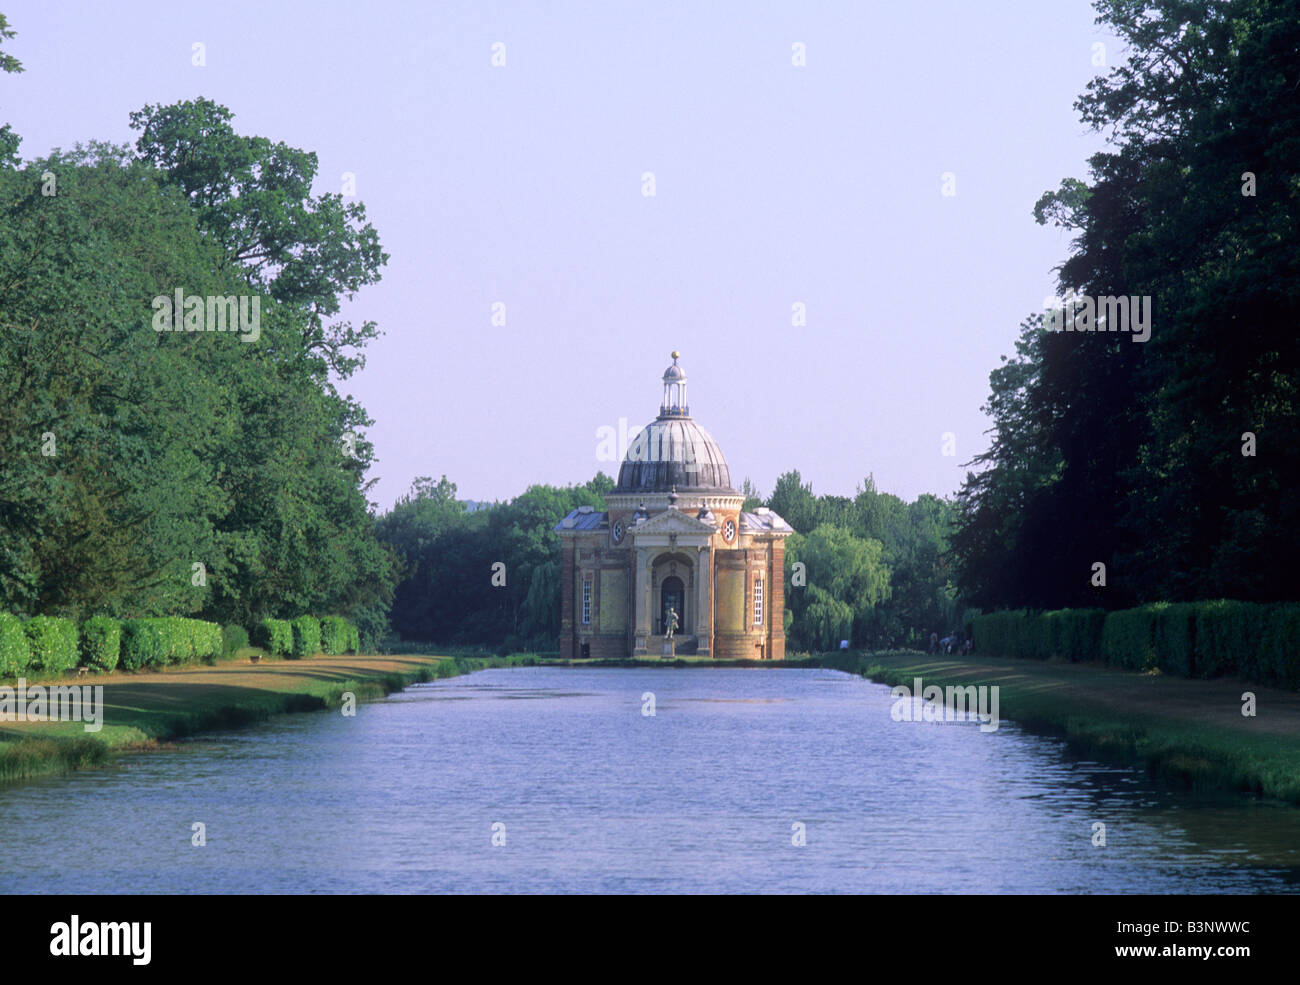 Wrest park lake pavilion 18th century landscape garden for Garden design 18th century